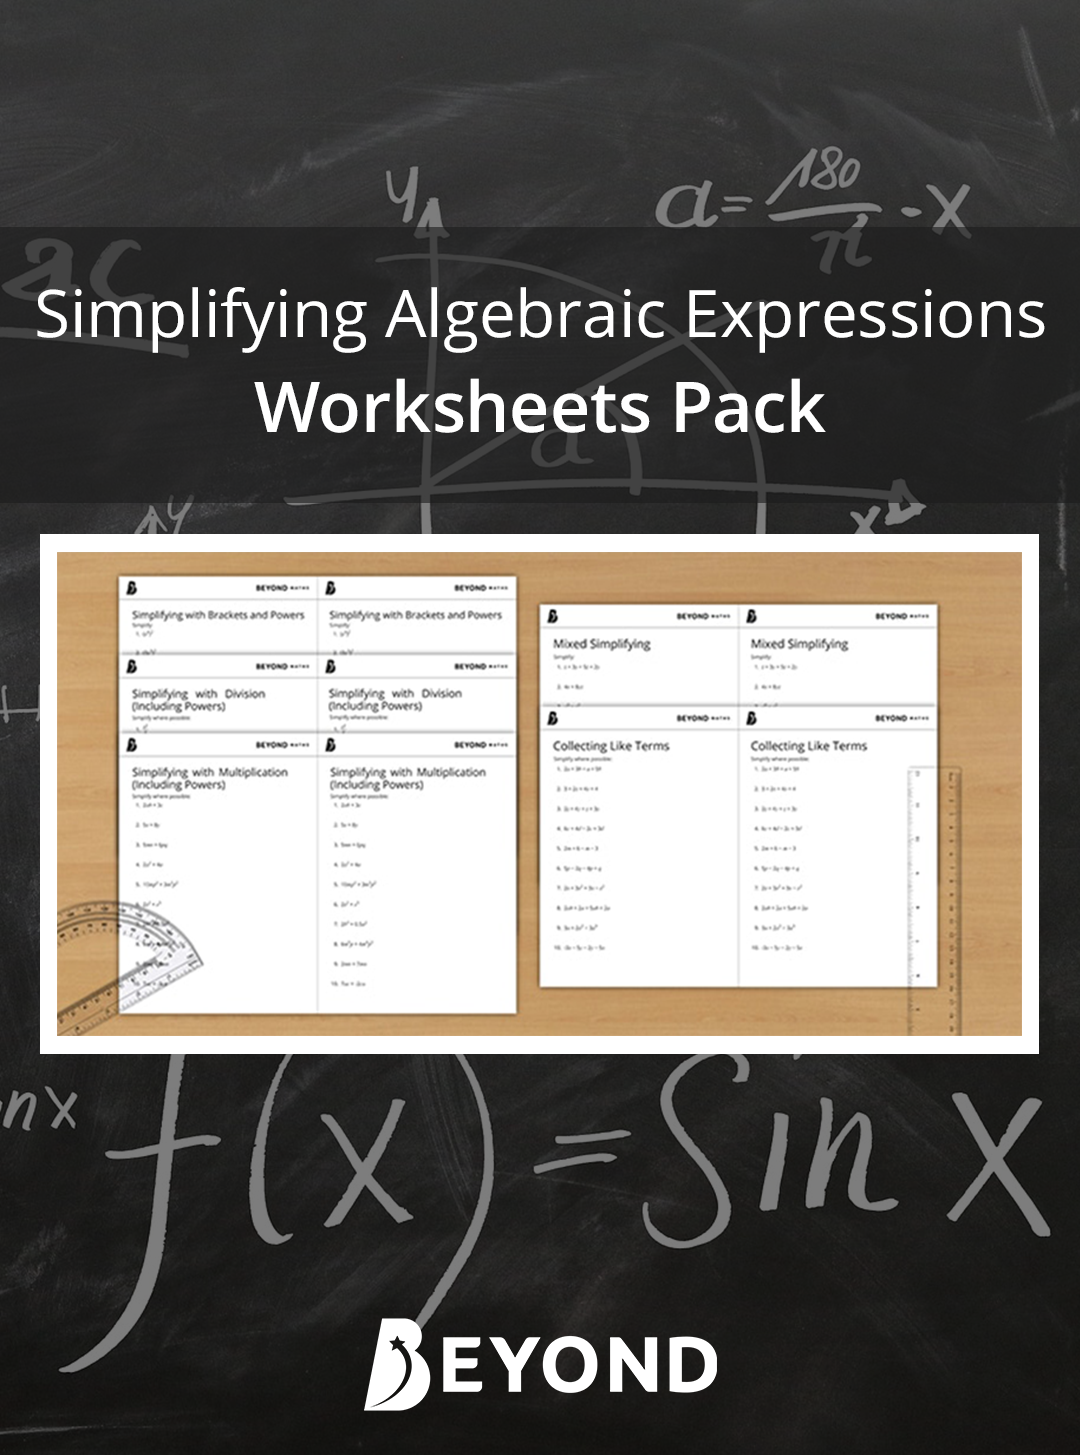 Students Can Use This Pack Of Worksheets To Practise